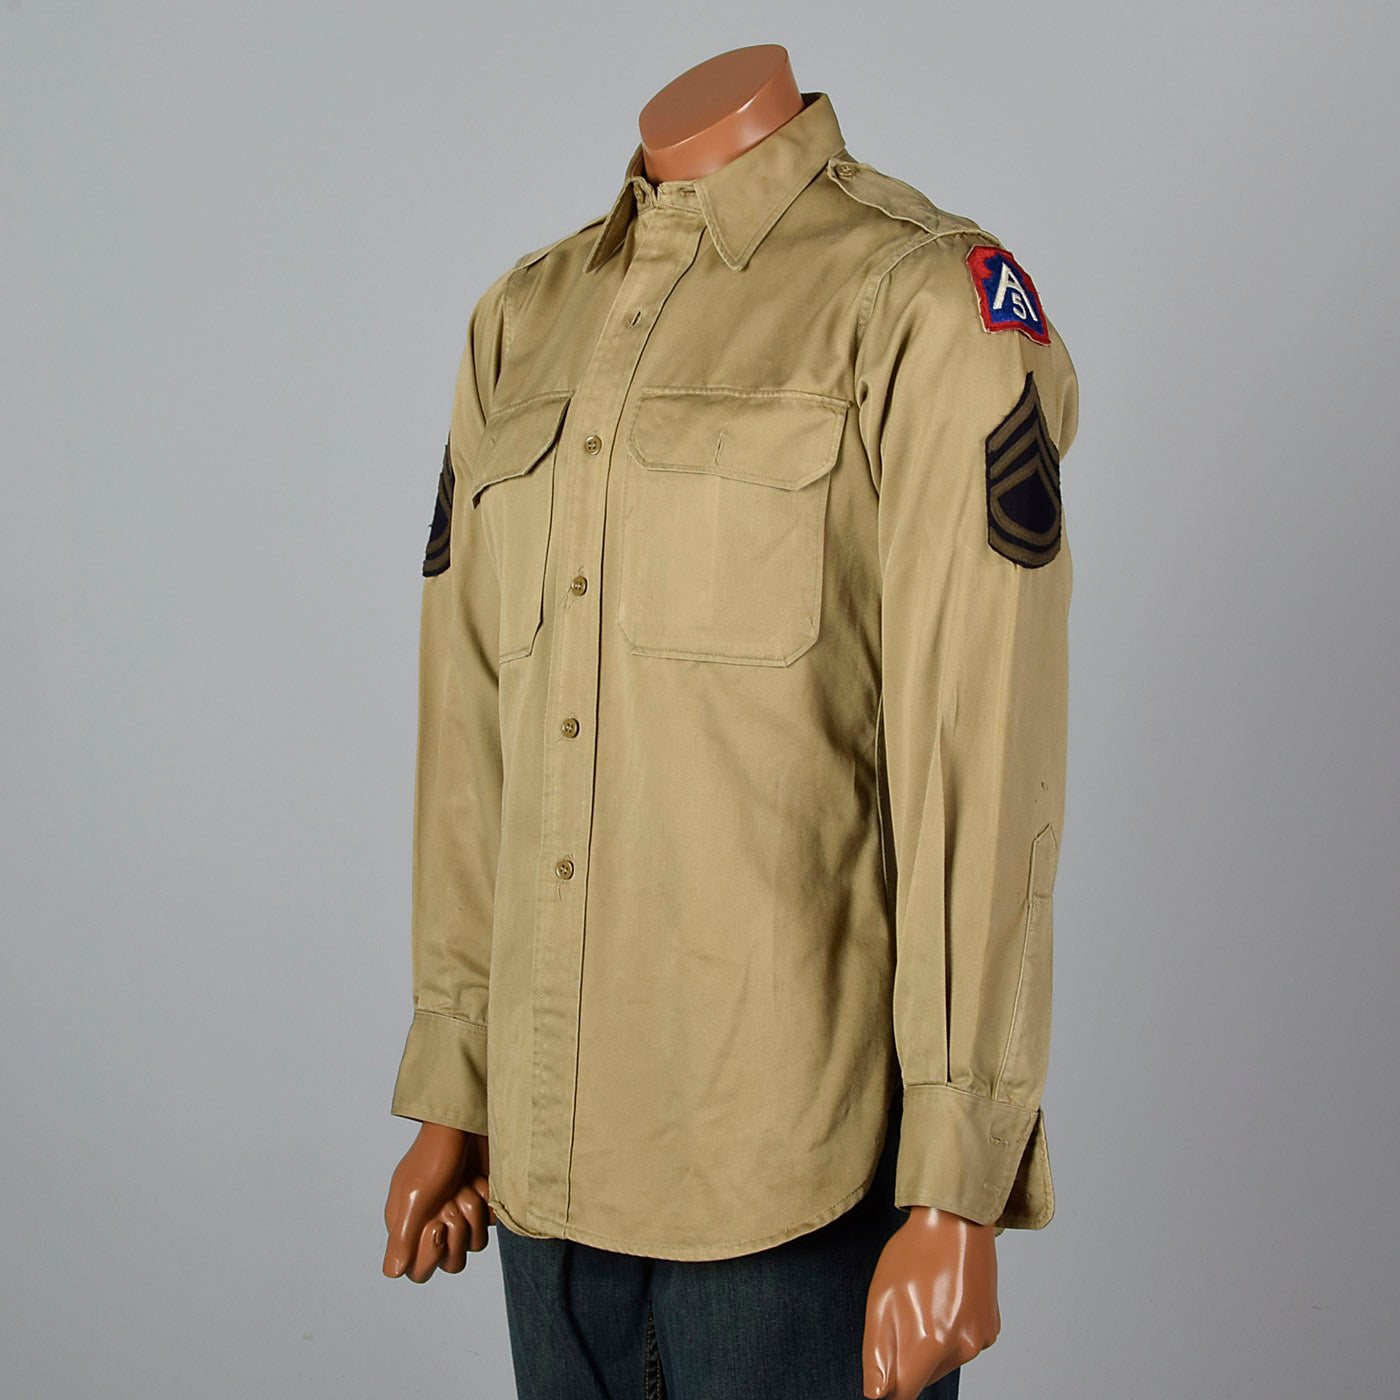 1940s Cotton US Military Shirt with Patches